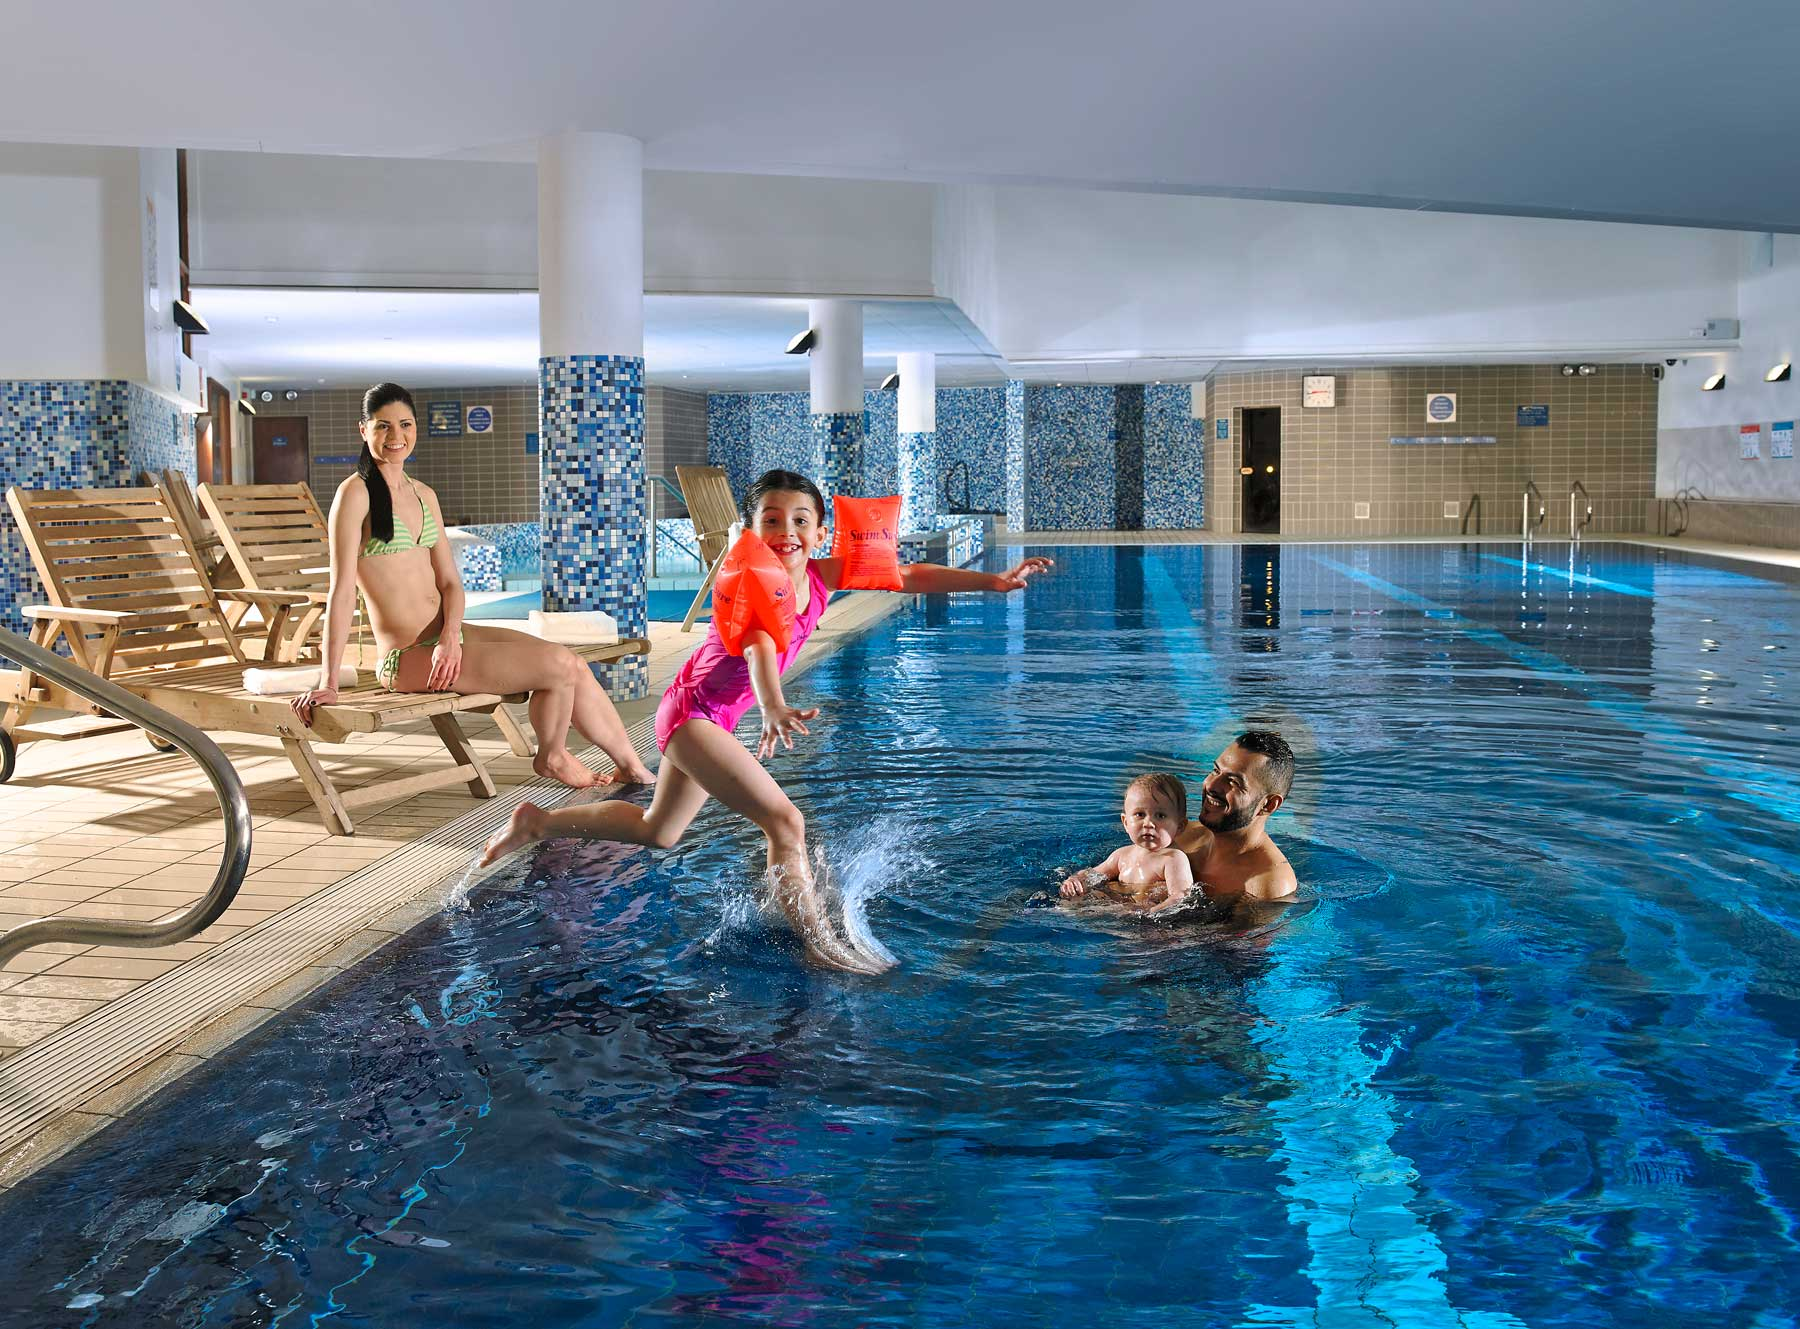 family-relaxing-in-pool-Club-Vitae-at-Clayton-Hotel-Liffey-Valley